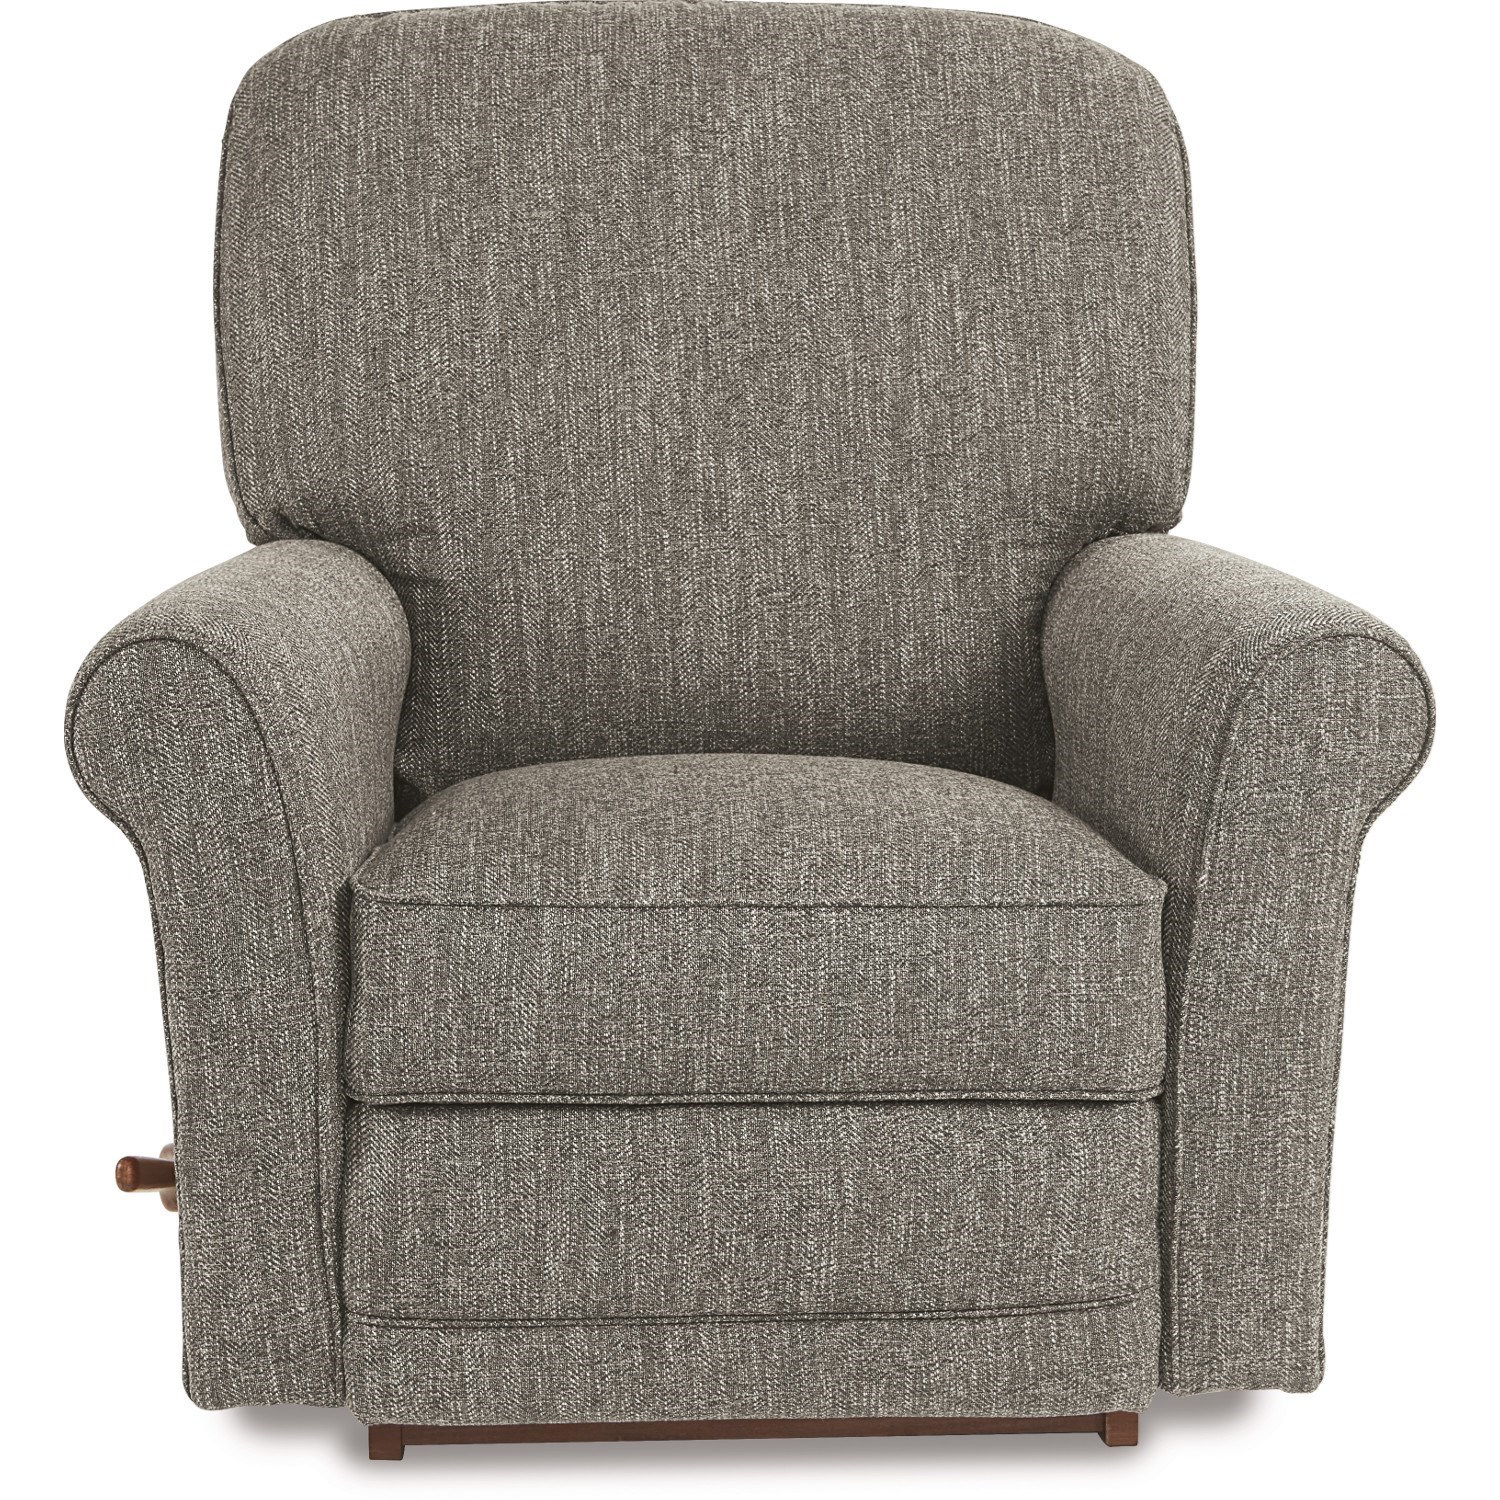 Addison RECLINA-WAY® Wall Recliner by La-Z-Boy at Fisher Home Furnishings